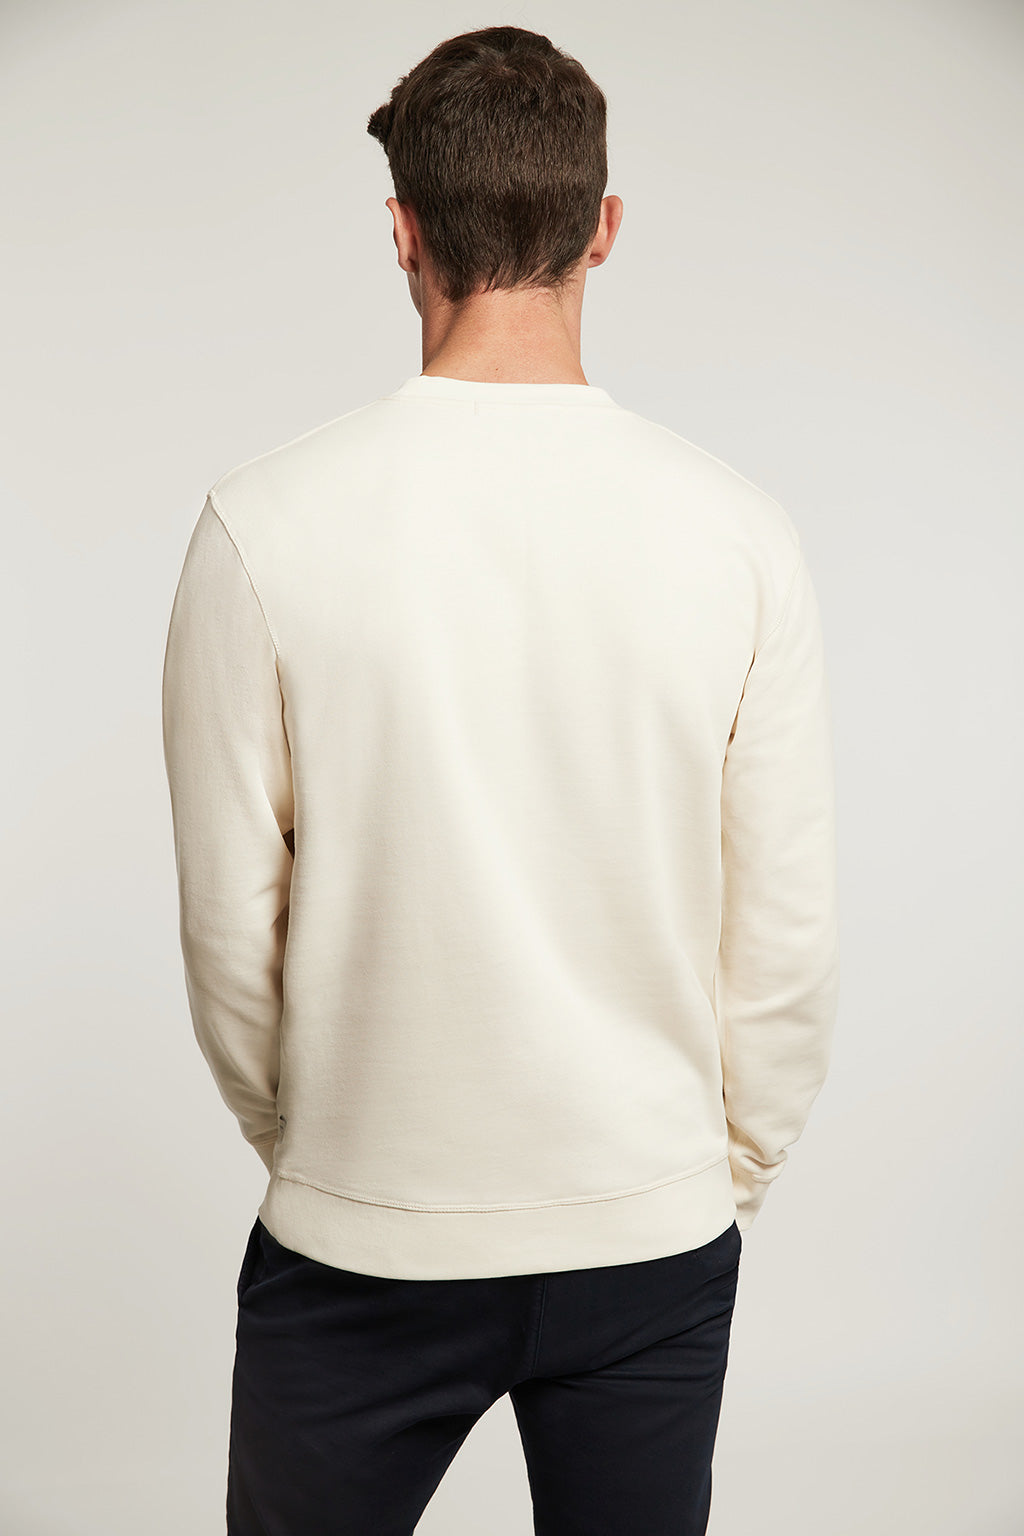 Bio-Sweatshirt naturfarben mit Stickerei in Kontrastfarbe